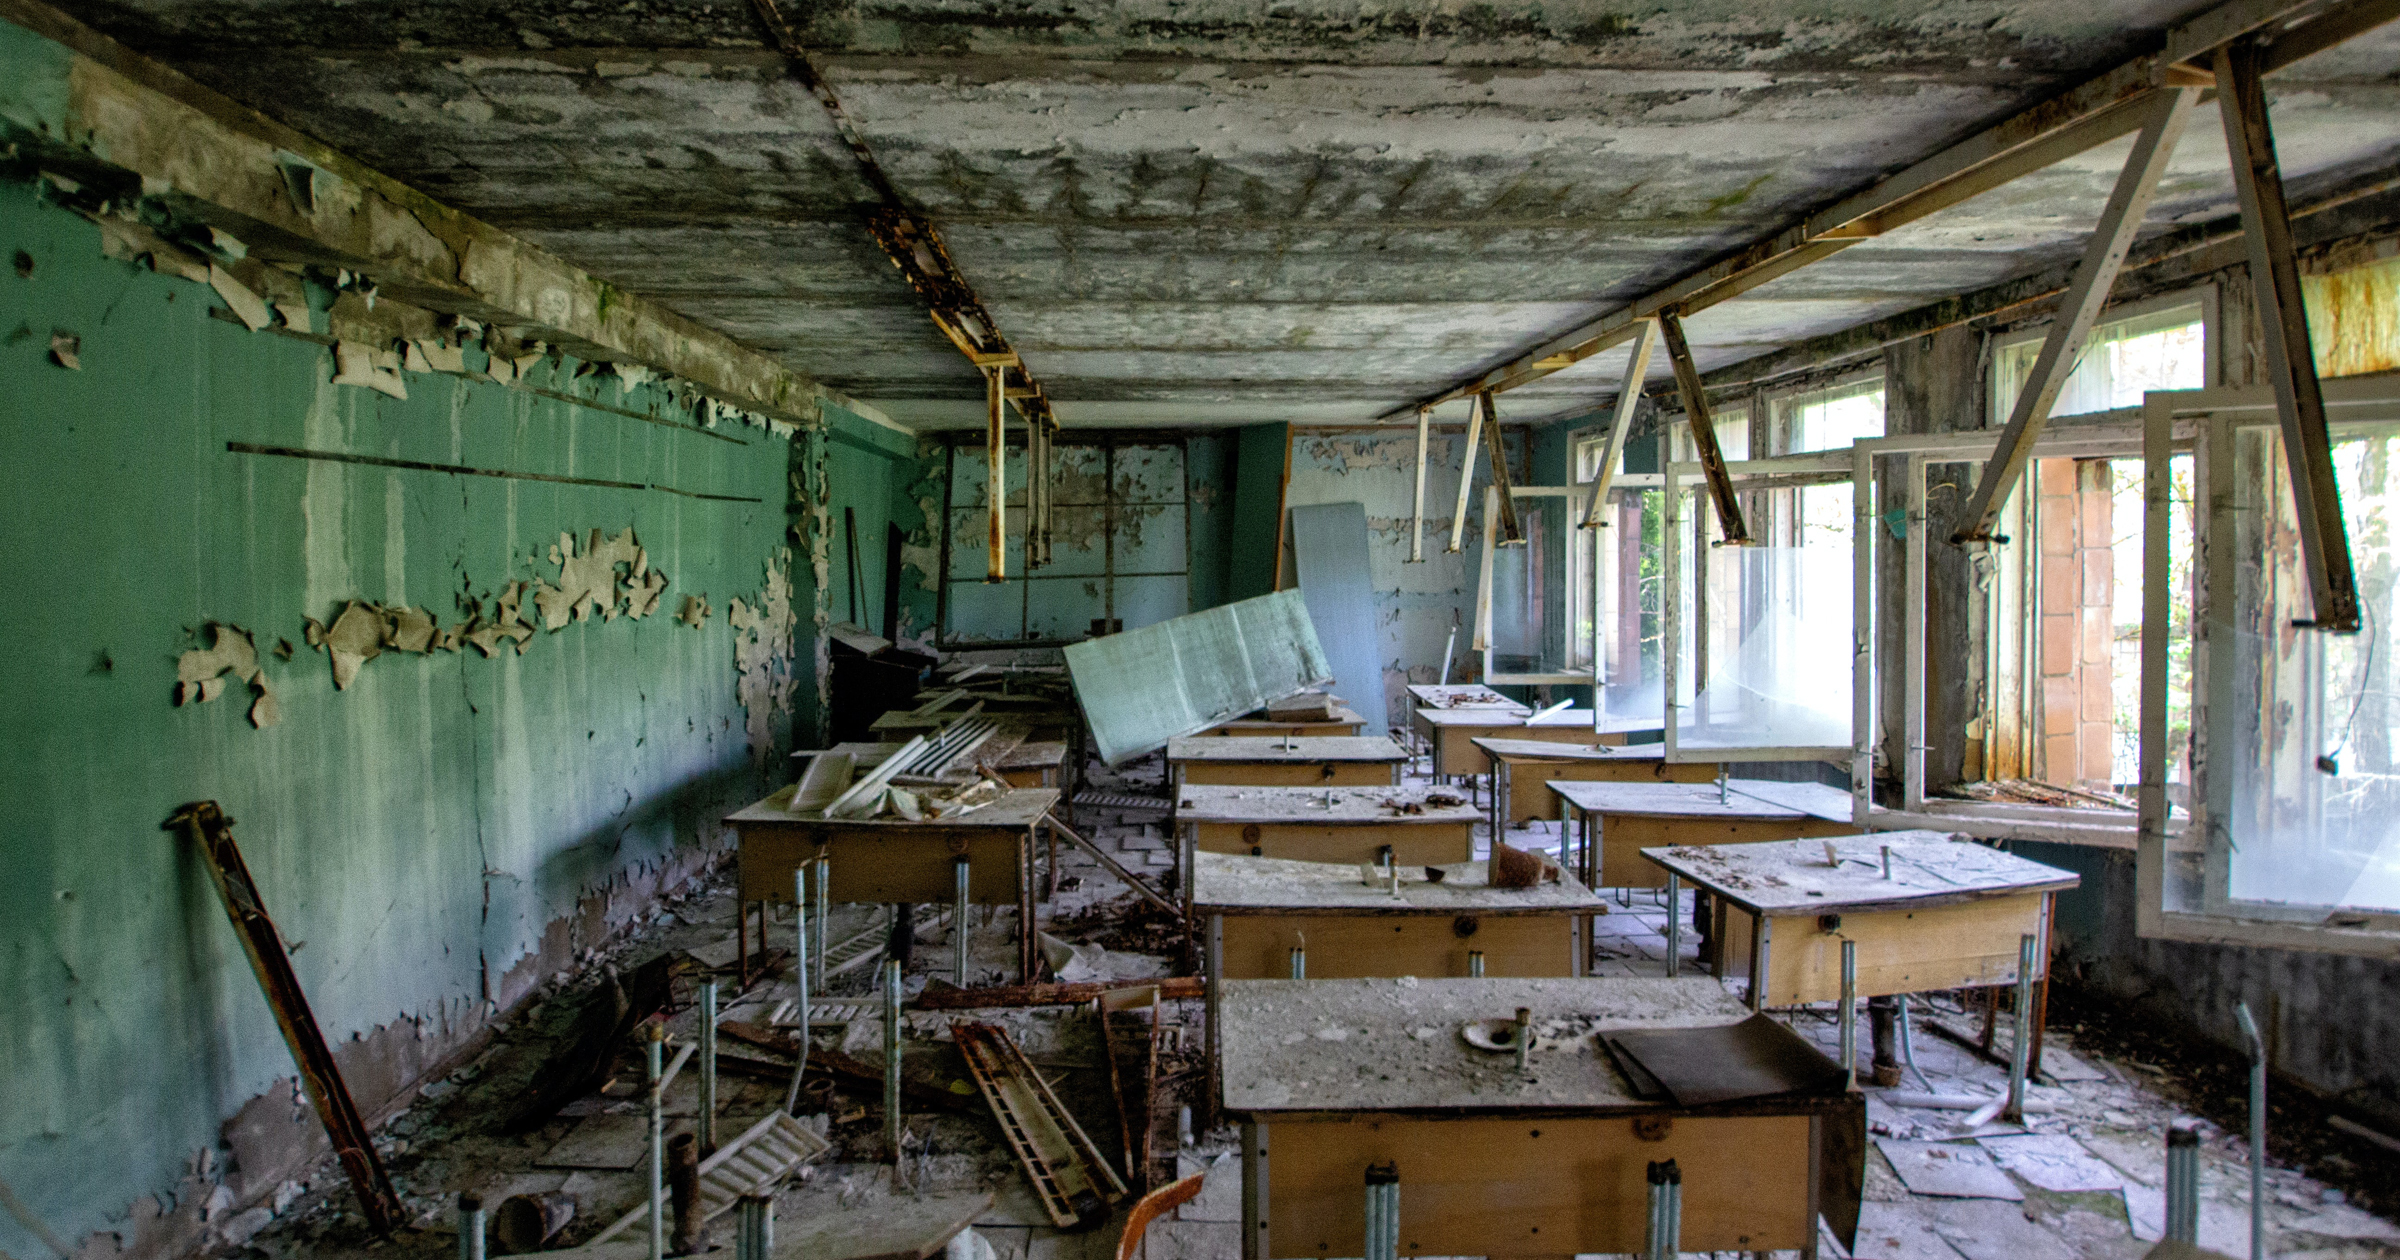 A photo of a wrecked classroom with paint peeling from the ceiling, desks turned over and broken.